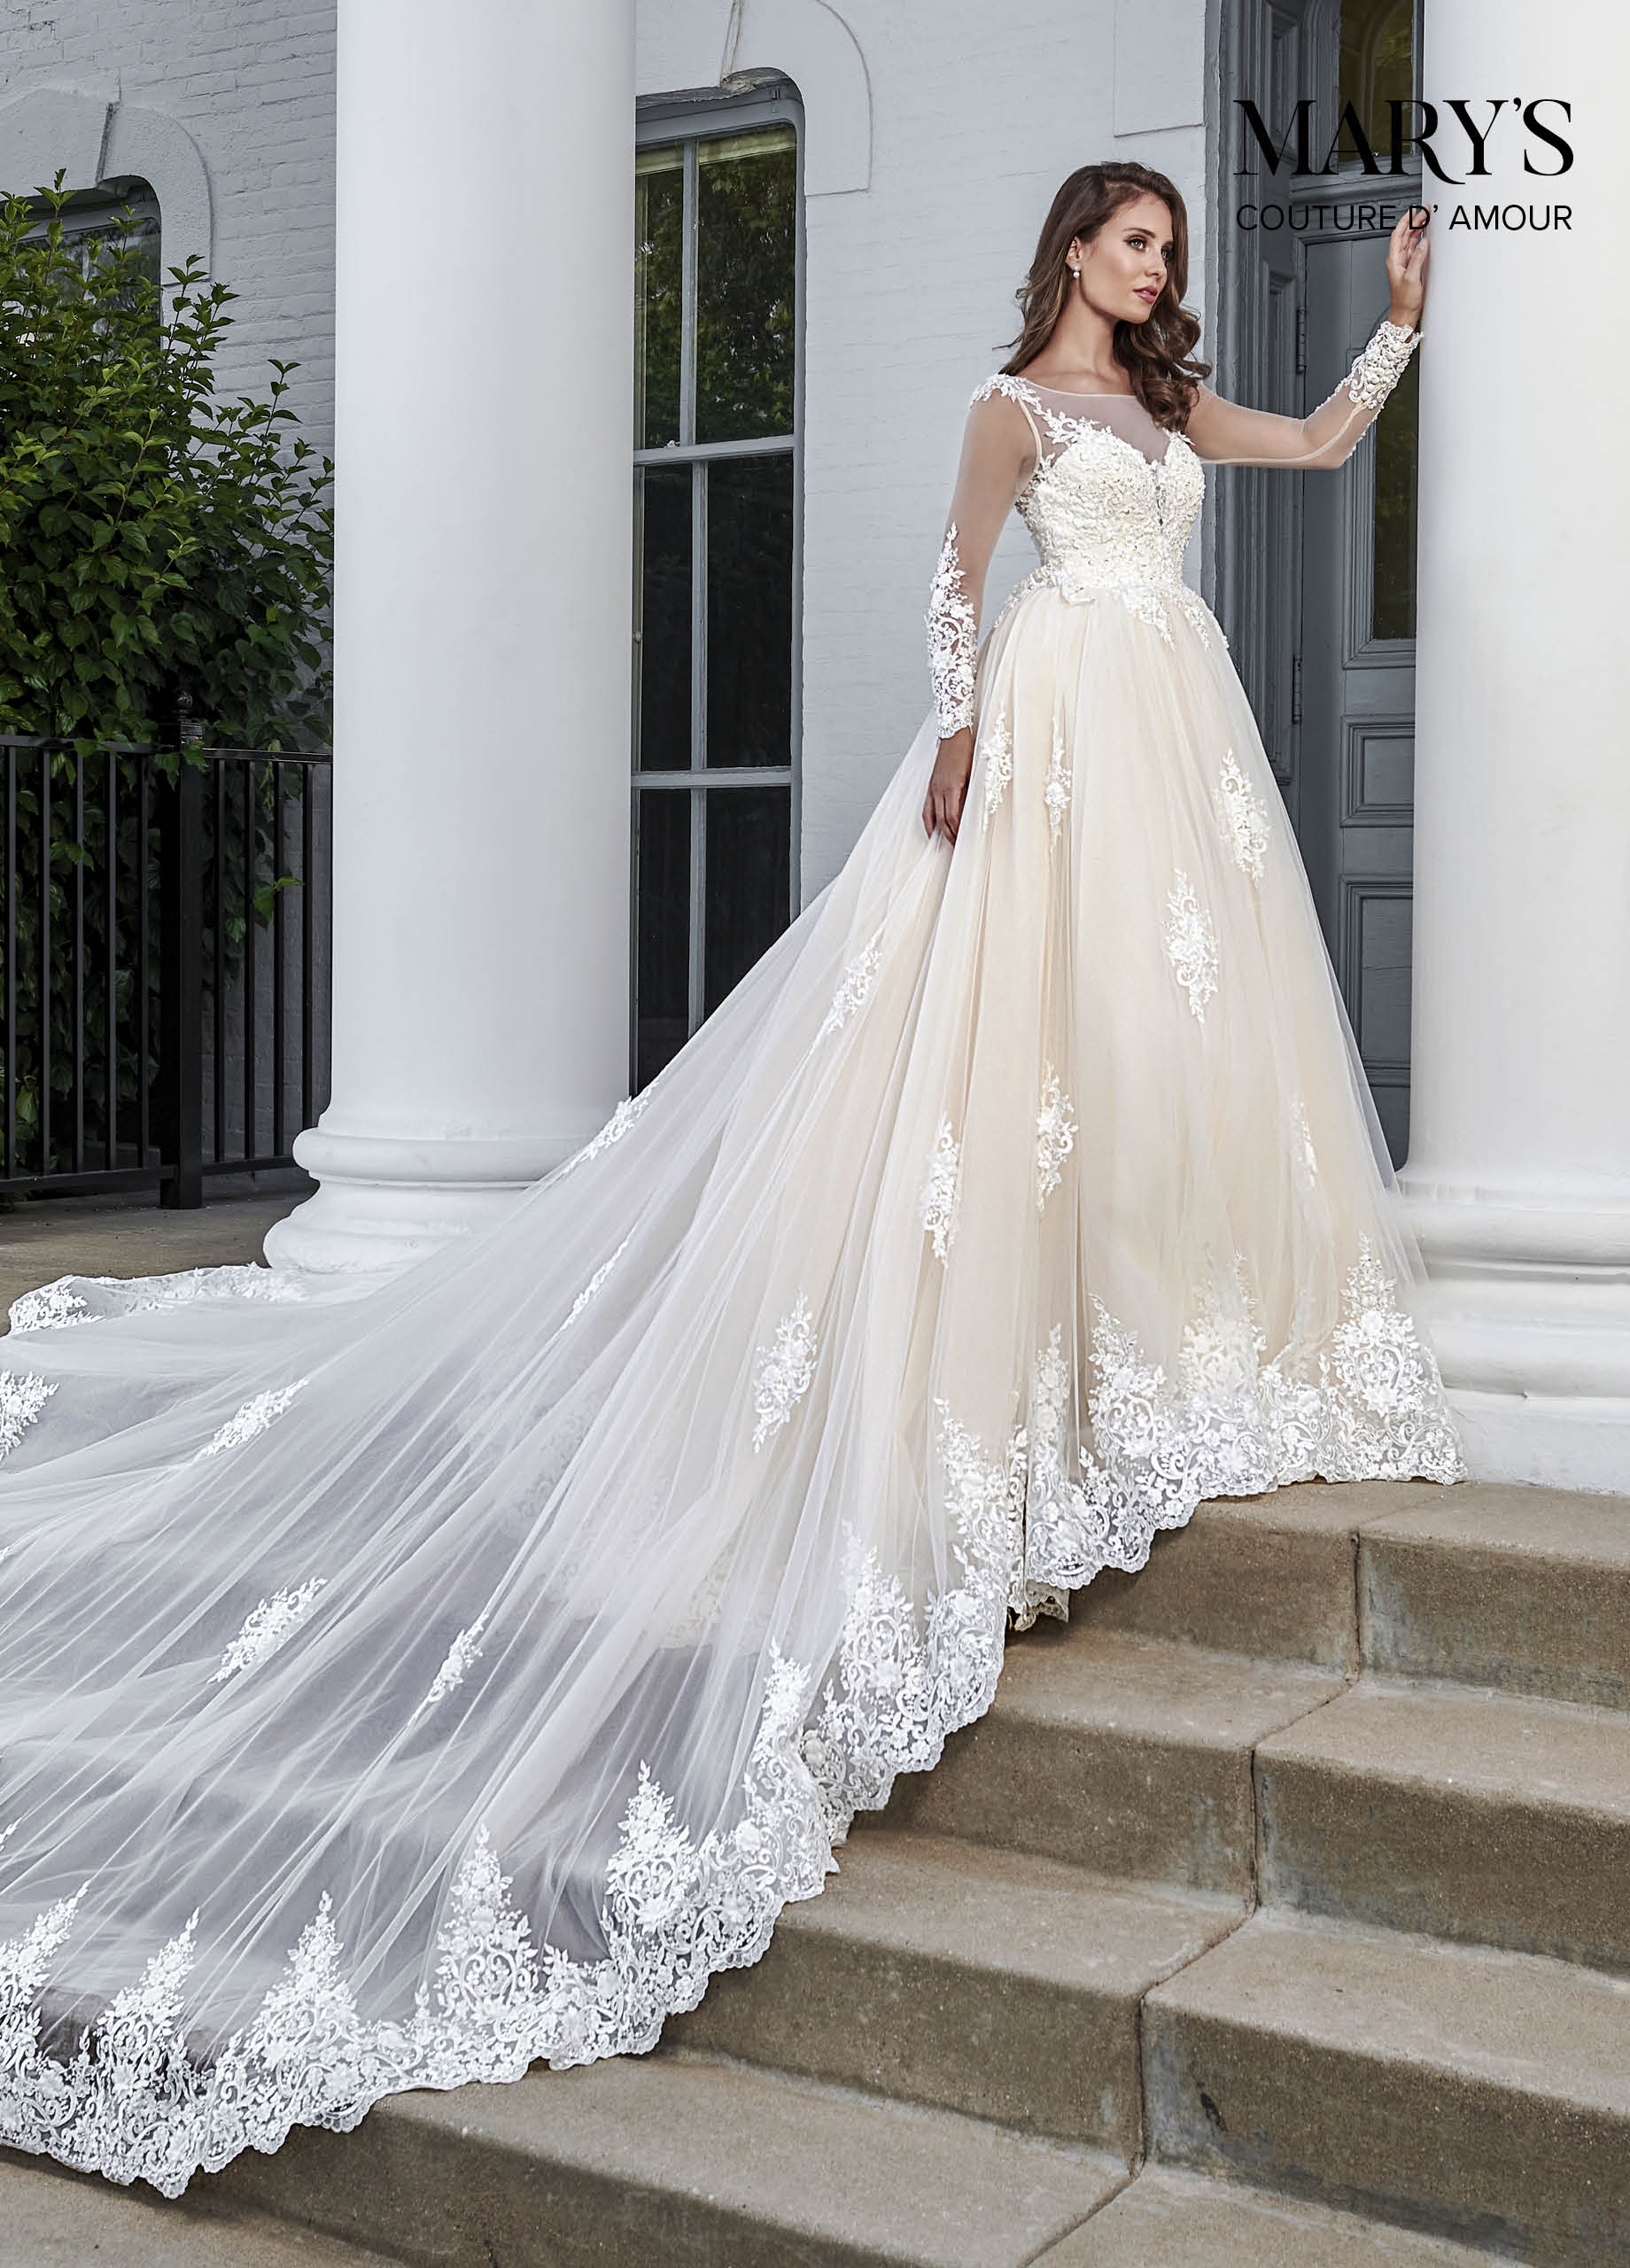 Couture Damour Bridal Dresses | Couture d'Amour | Style - MB4044